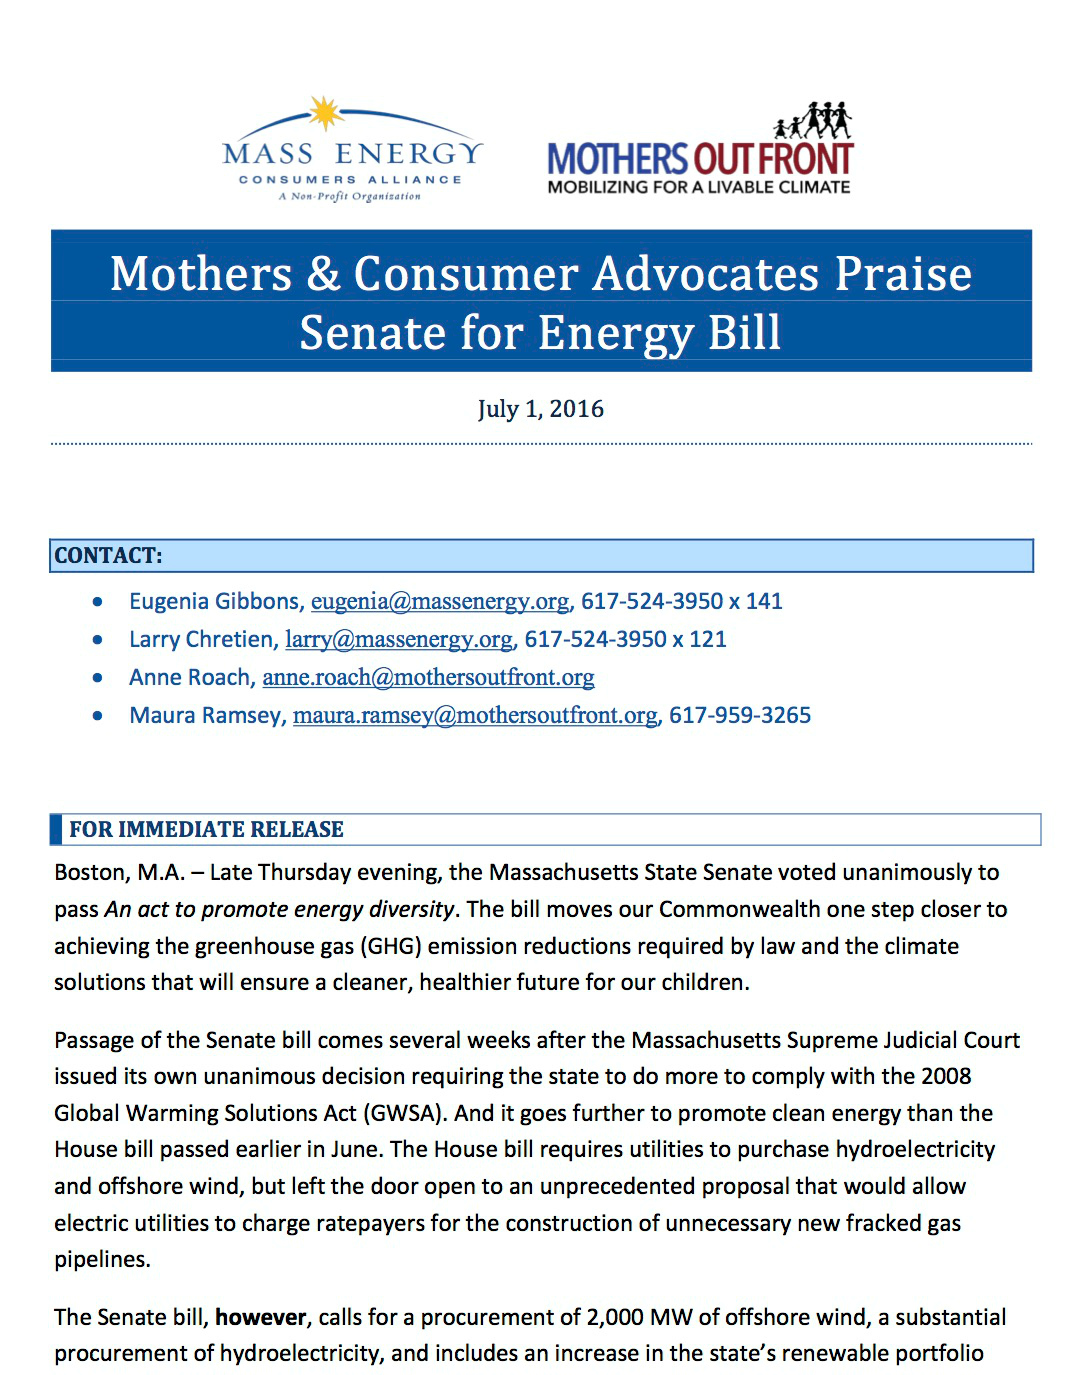 Mass_Energy_Mothers_Out_Front_press_release_S2372_1F.jpg